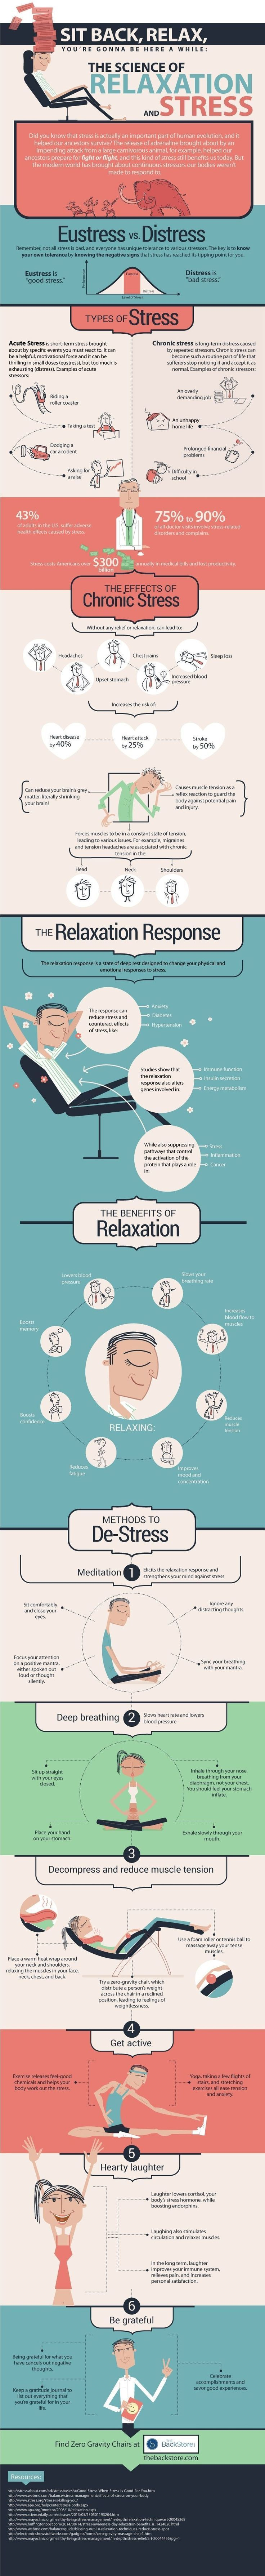 The Science of Relaxation and Stress #infographic #Science #Stress